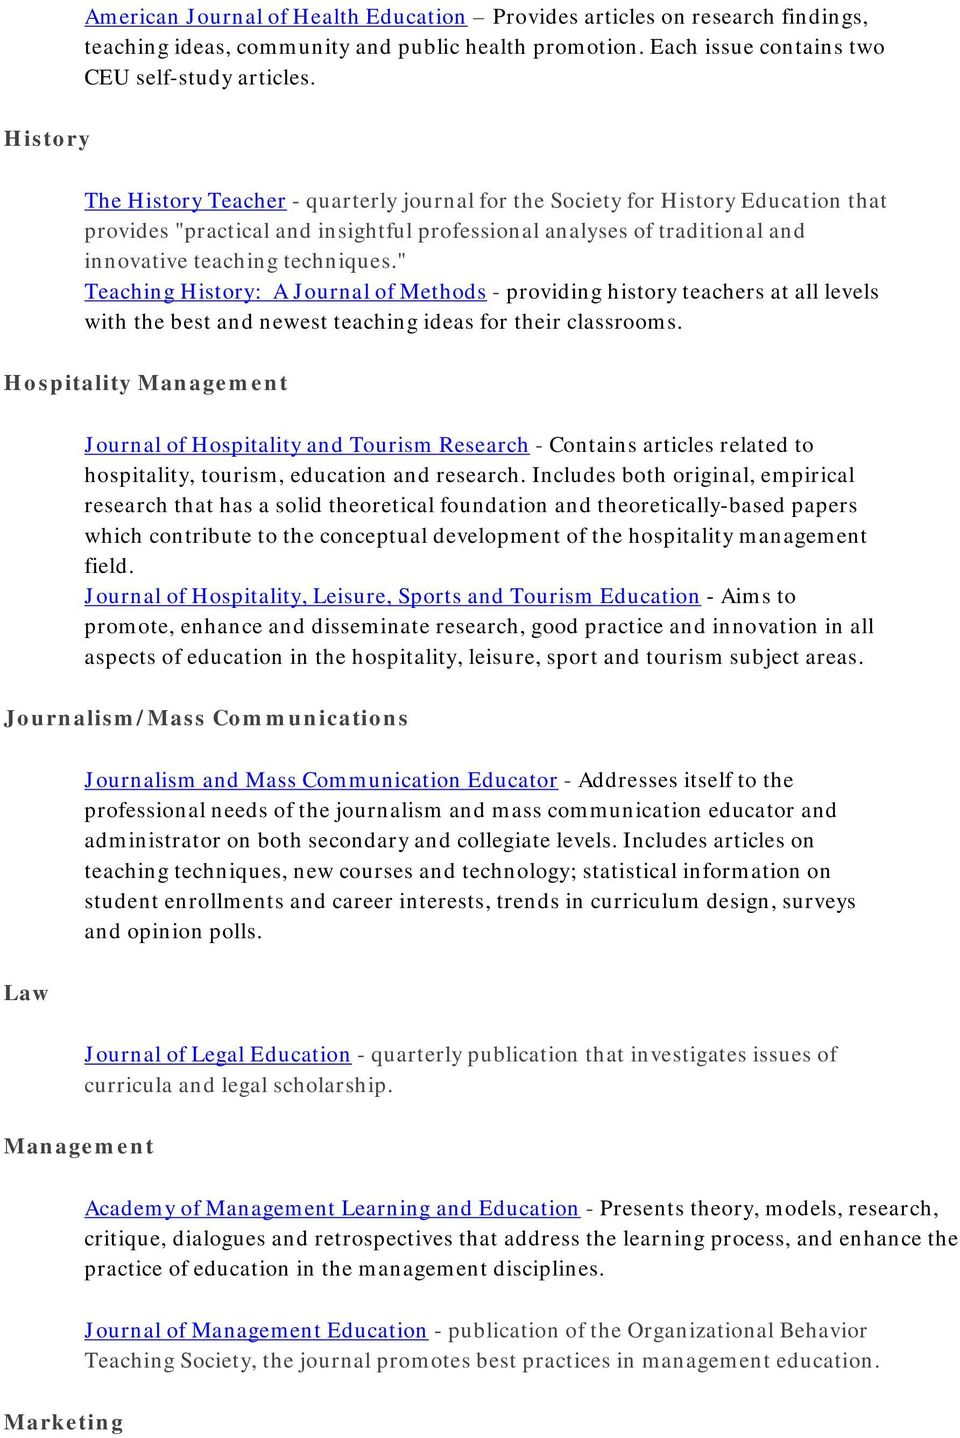 """ Teaching History: A Journal of Methods - providing history teachers at all levels with the best and newest teaching ideas for their classrooms."